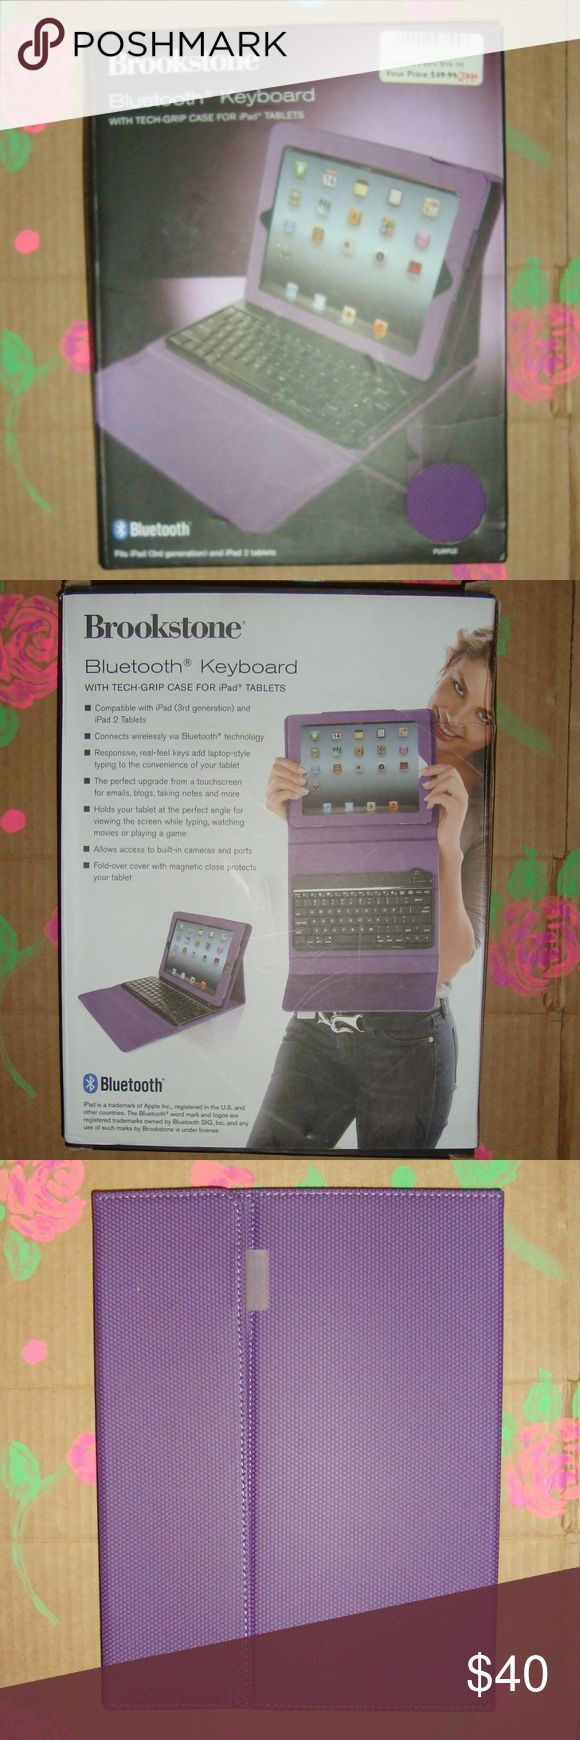 NEW -  Brookstone Bluetooth Case For iPad -Purple Brookstone 797194 Bluetooth Case For iPad 3rd Generation and iPad 2 Tablets in NEW Condition Allows Access to built in cameras & ports Brookstone Accessories Tablet Cases